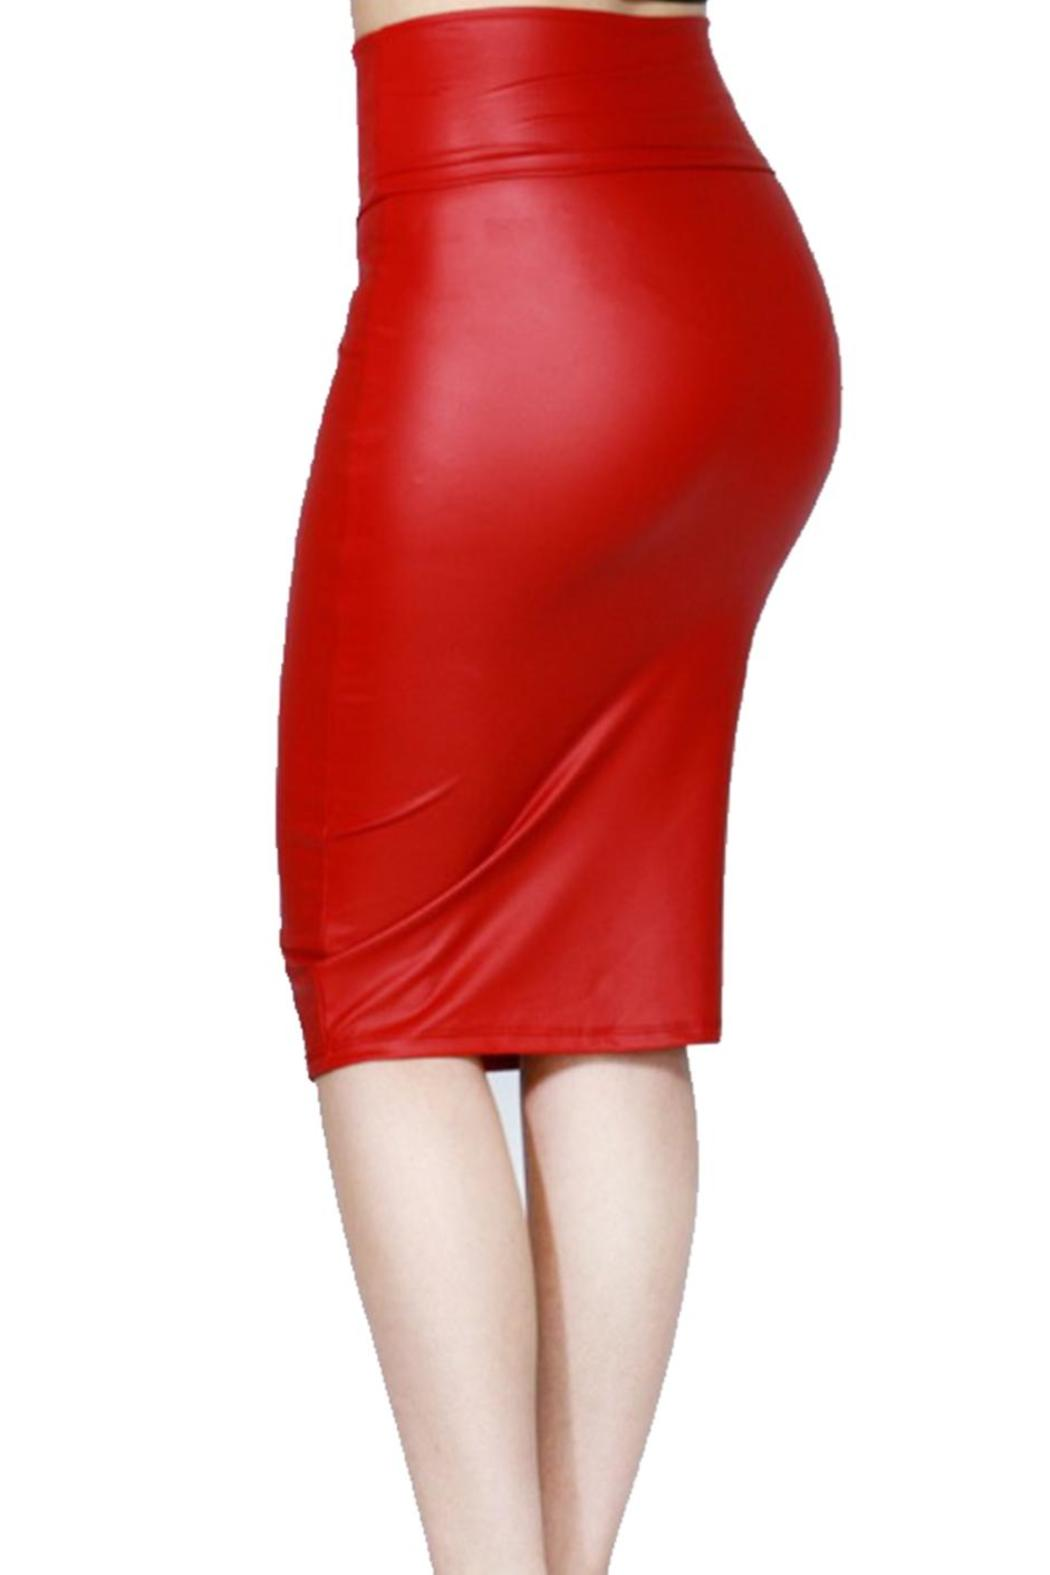 Vegan Leather Pencil Skirt from Las Vegas by Glam Squad Shop ...